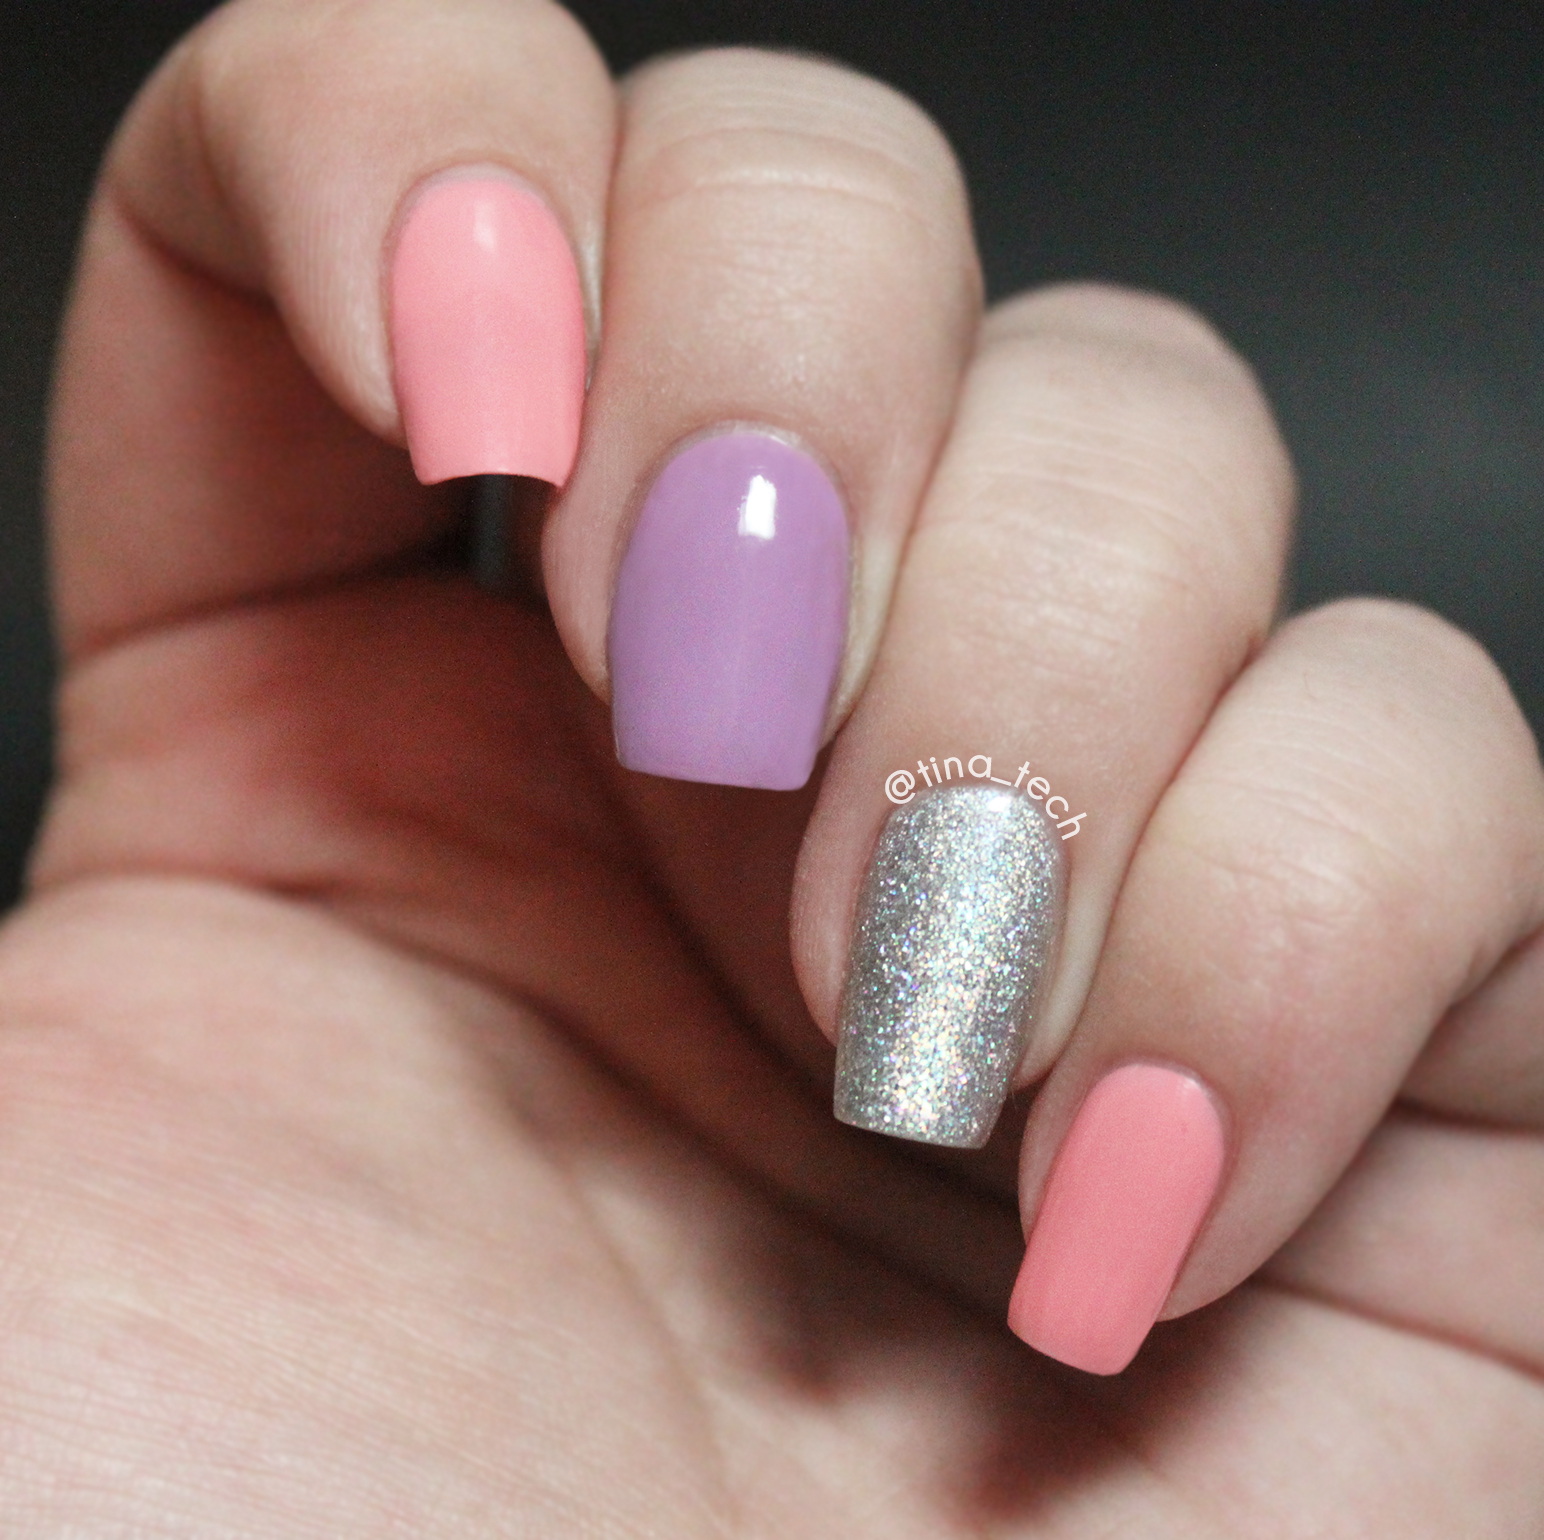 Lilac Nail Polish Designs Best Nail - Nail art lilac - DIY Lilac And Silver Glitter Nail Art With James Allen Mini. Nail